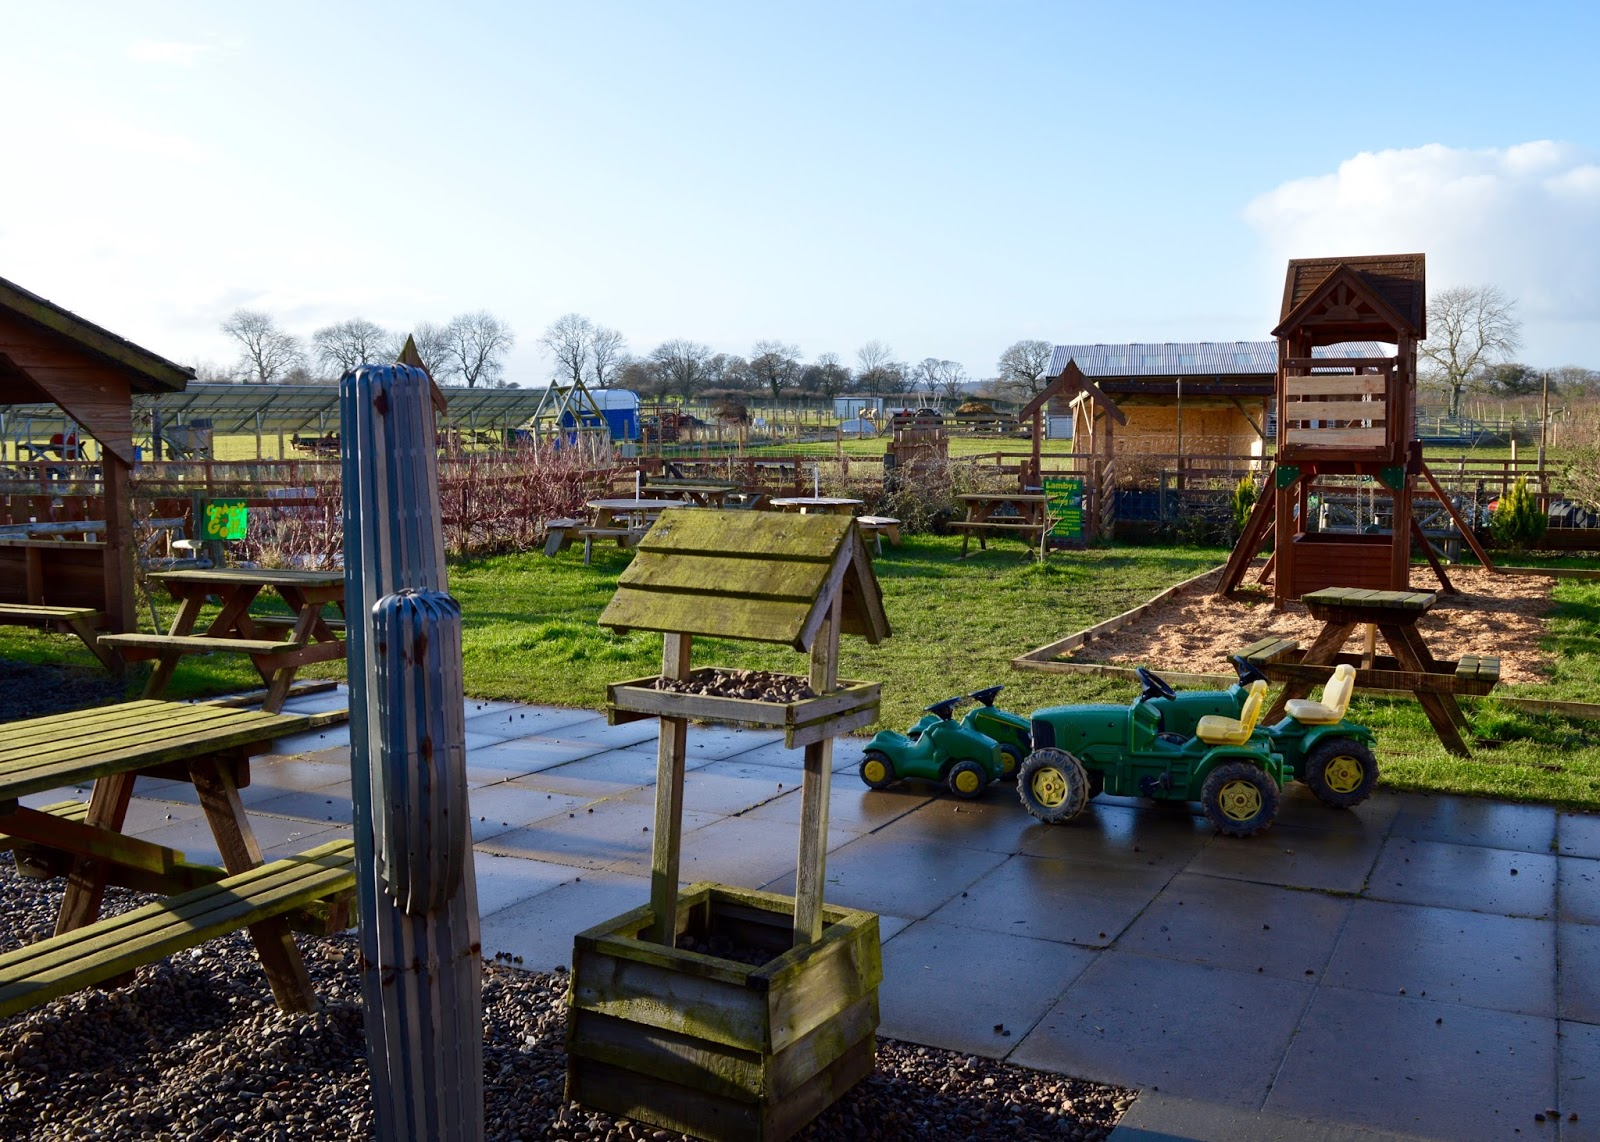 Northumberland County Zoo Reviews - outdoor play area